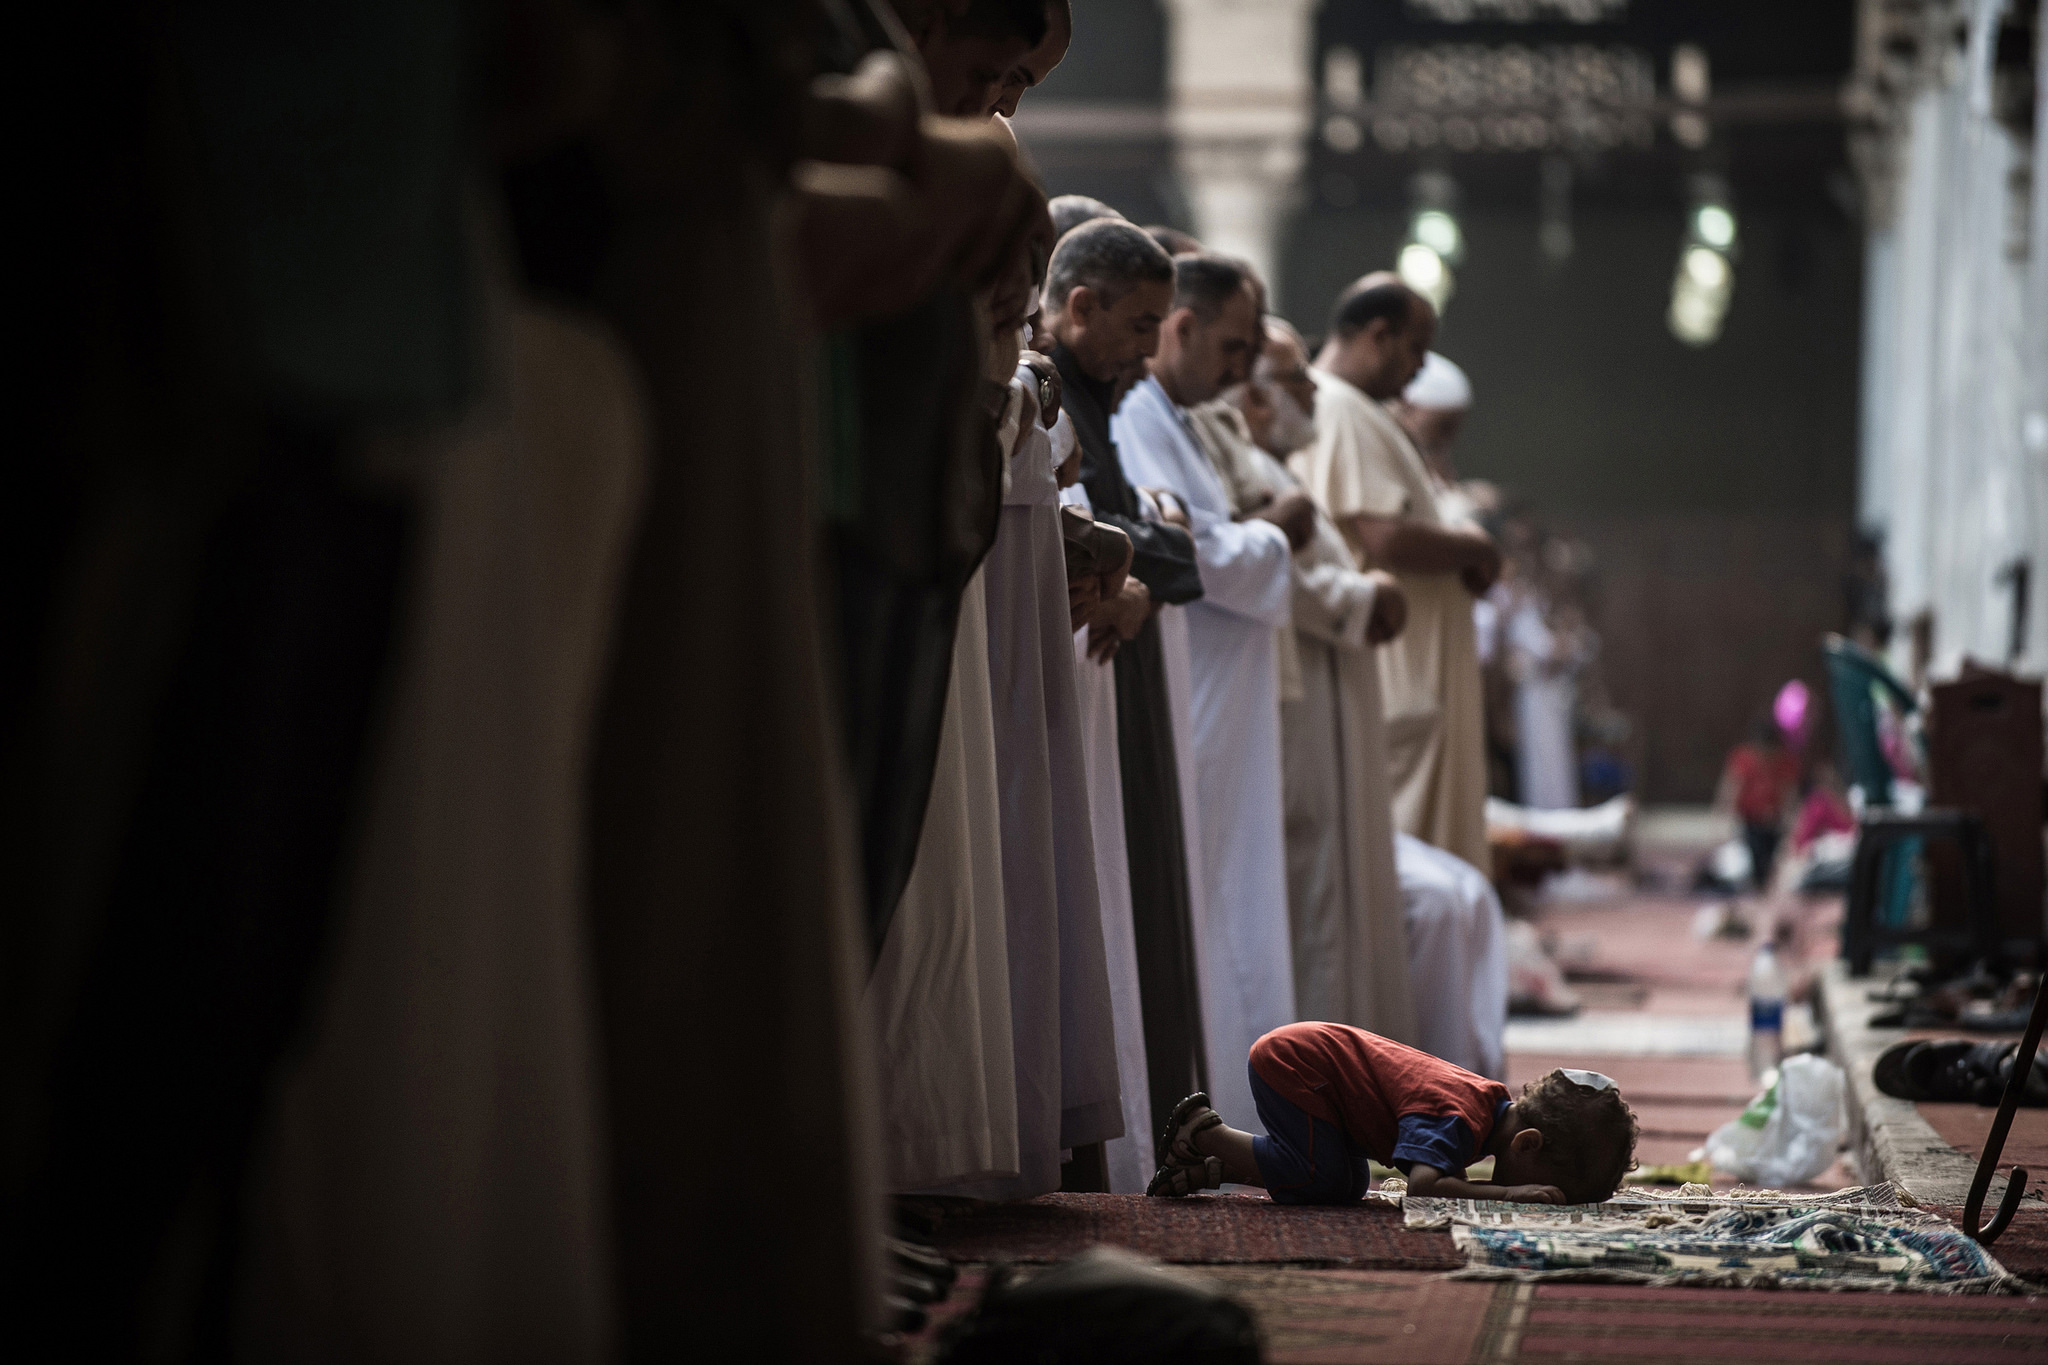 Photo Credit: Chaoyue 超越 PAN 潘 on Flickr Photo Caption: Eid-al-Fitr prayers in Egypt Flickr Link: https://flic.kr/p/rehWuW